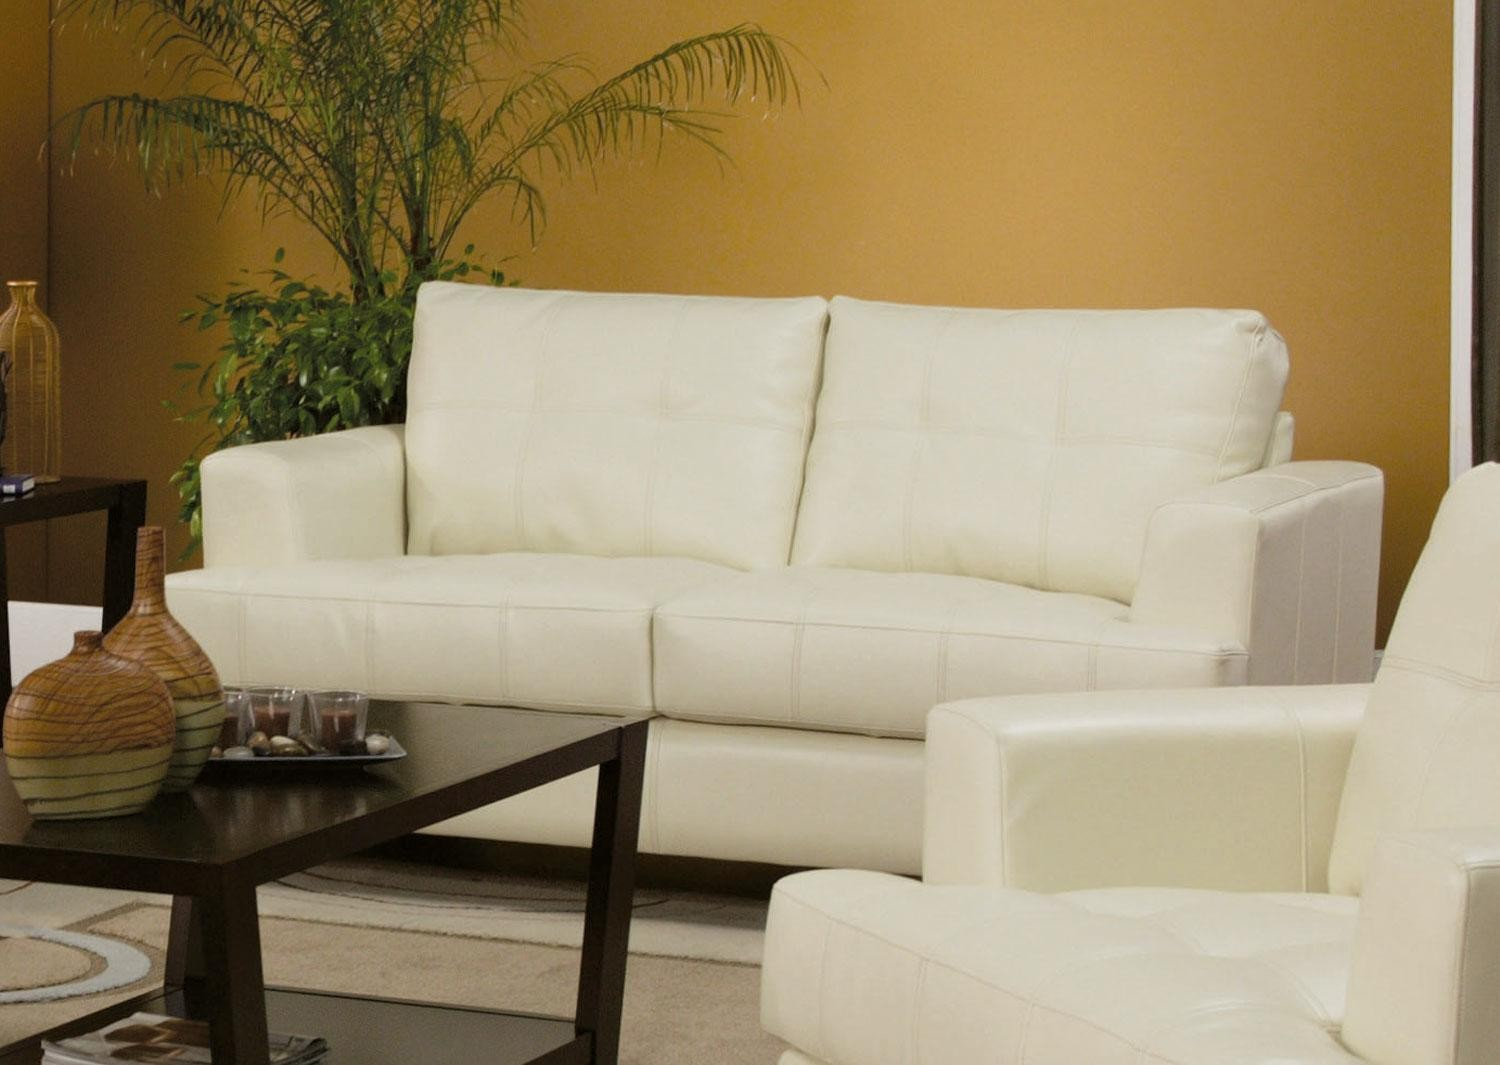 Samuel cream leather living room set 501691 from coaster for Cream couch living room